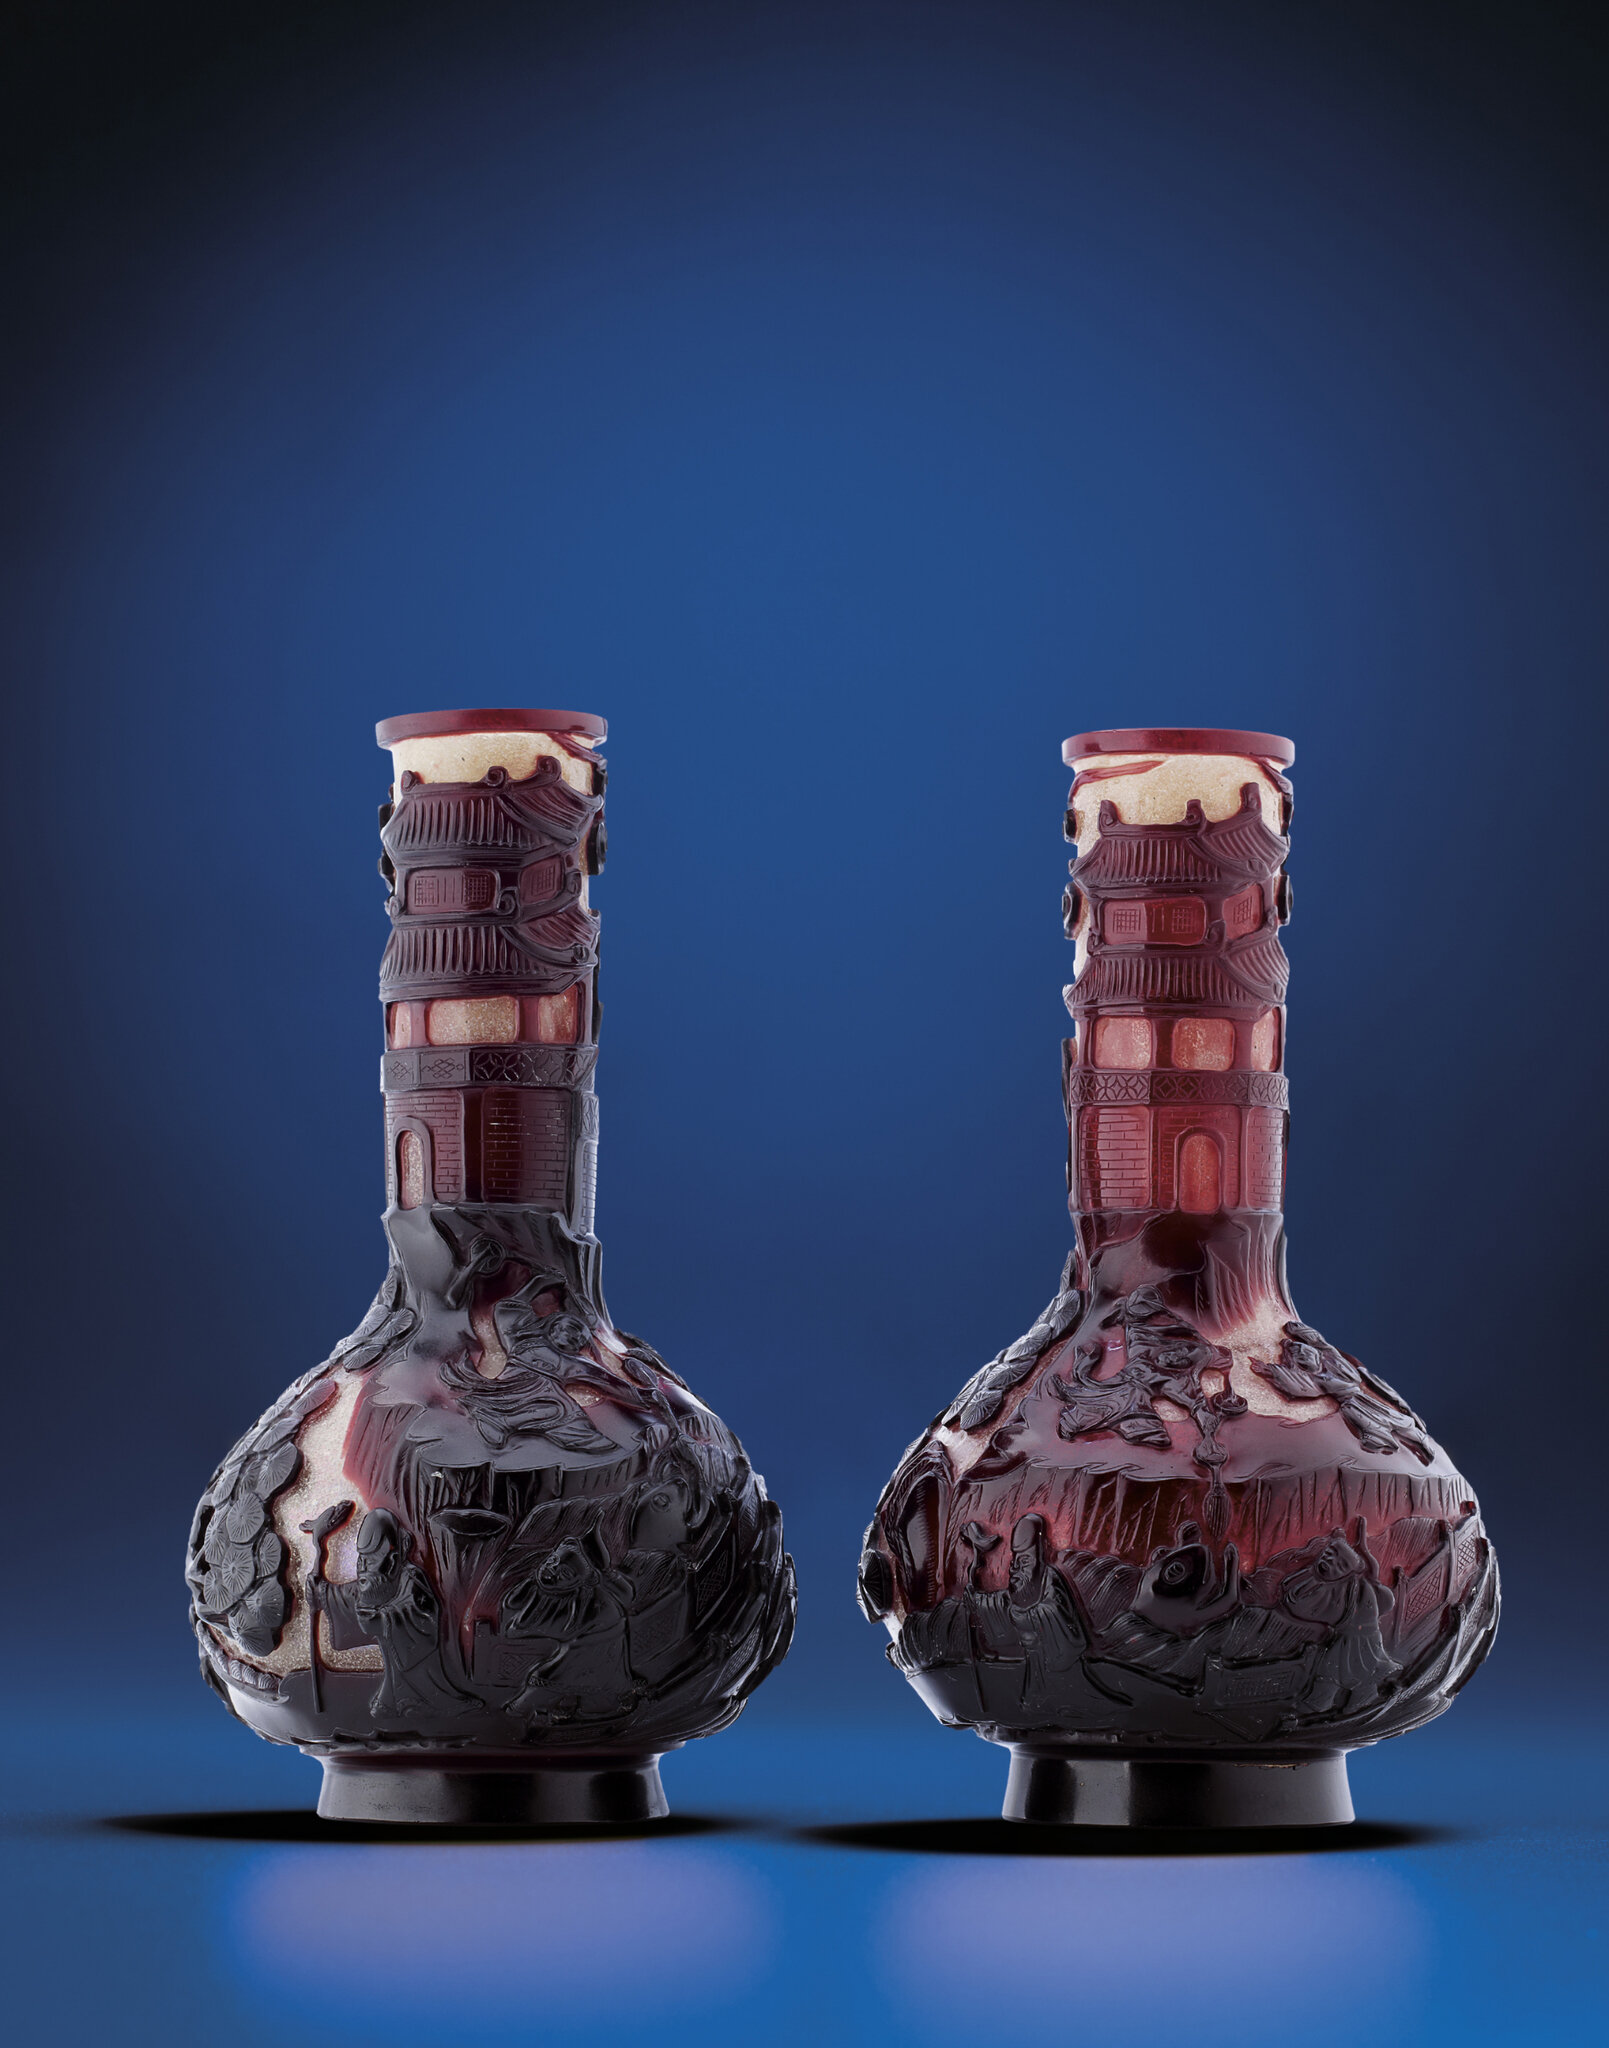 A rare pair of ruby-red-overlay snowflake glass bottle vases, Qing dynasty, 18th-19th century